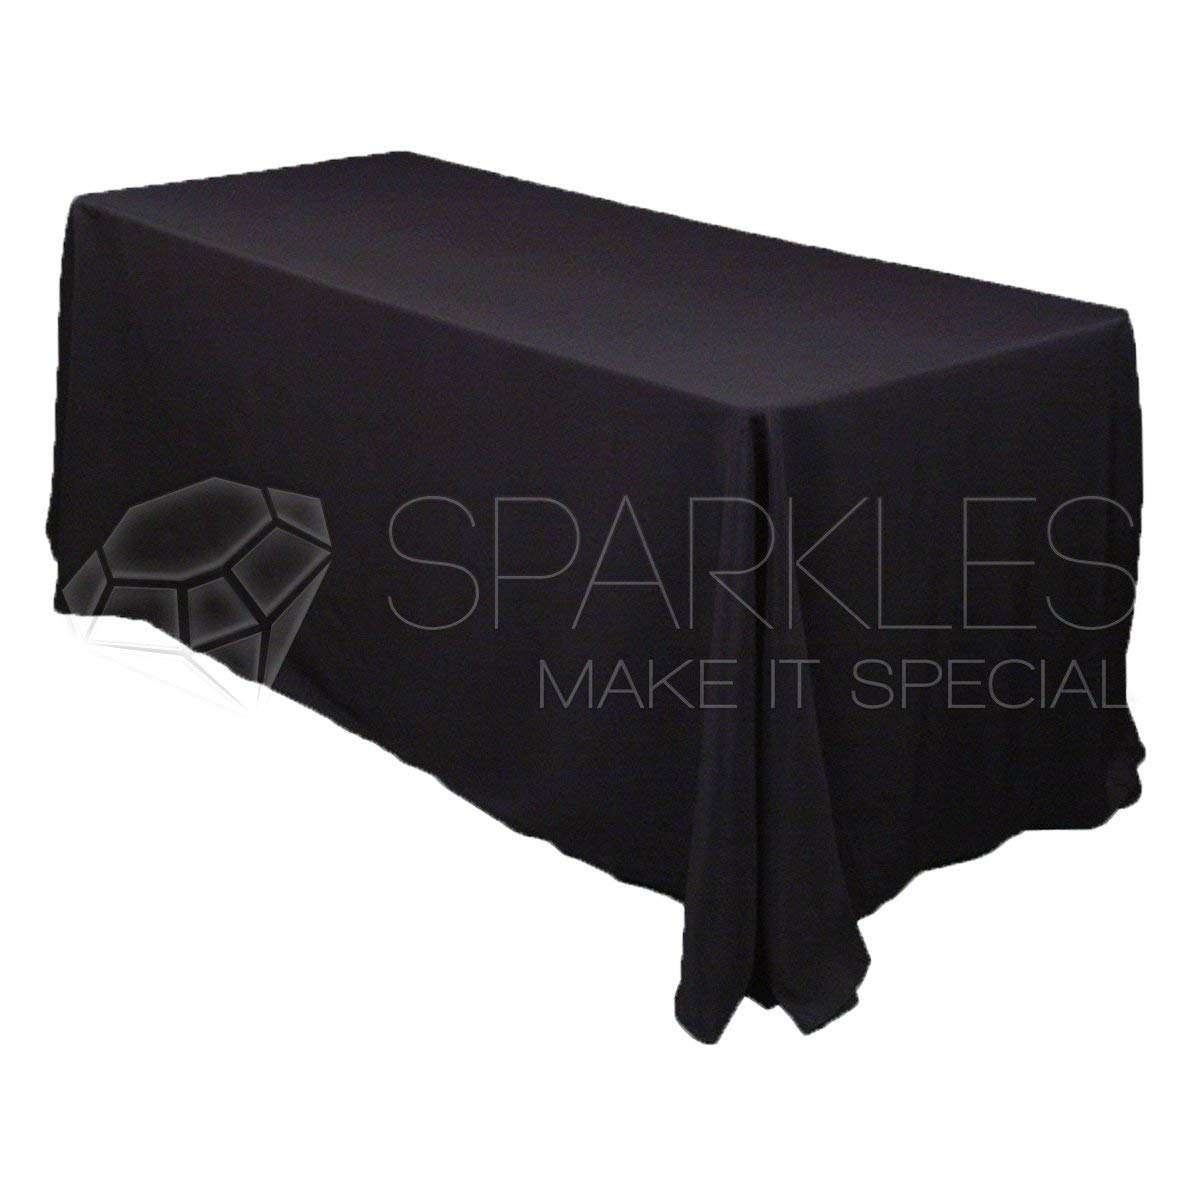 "Sparkles Make It Special 90"" x 156"" inch Rectangular Polyester Cloth Fabric Linen Tablecloth - Wedding Reception Restaurant Banquet Party - Machine Washable - Black"